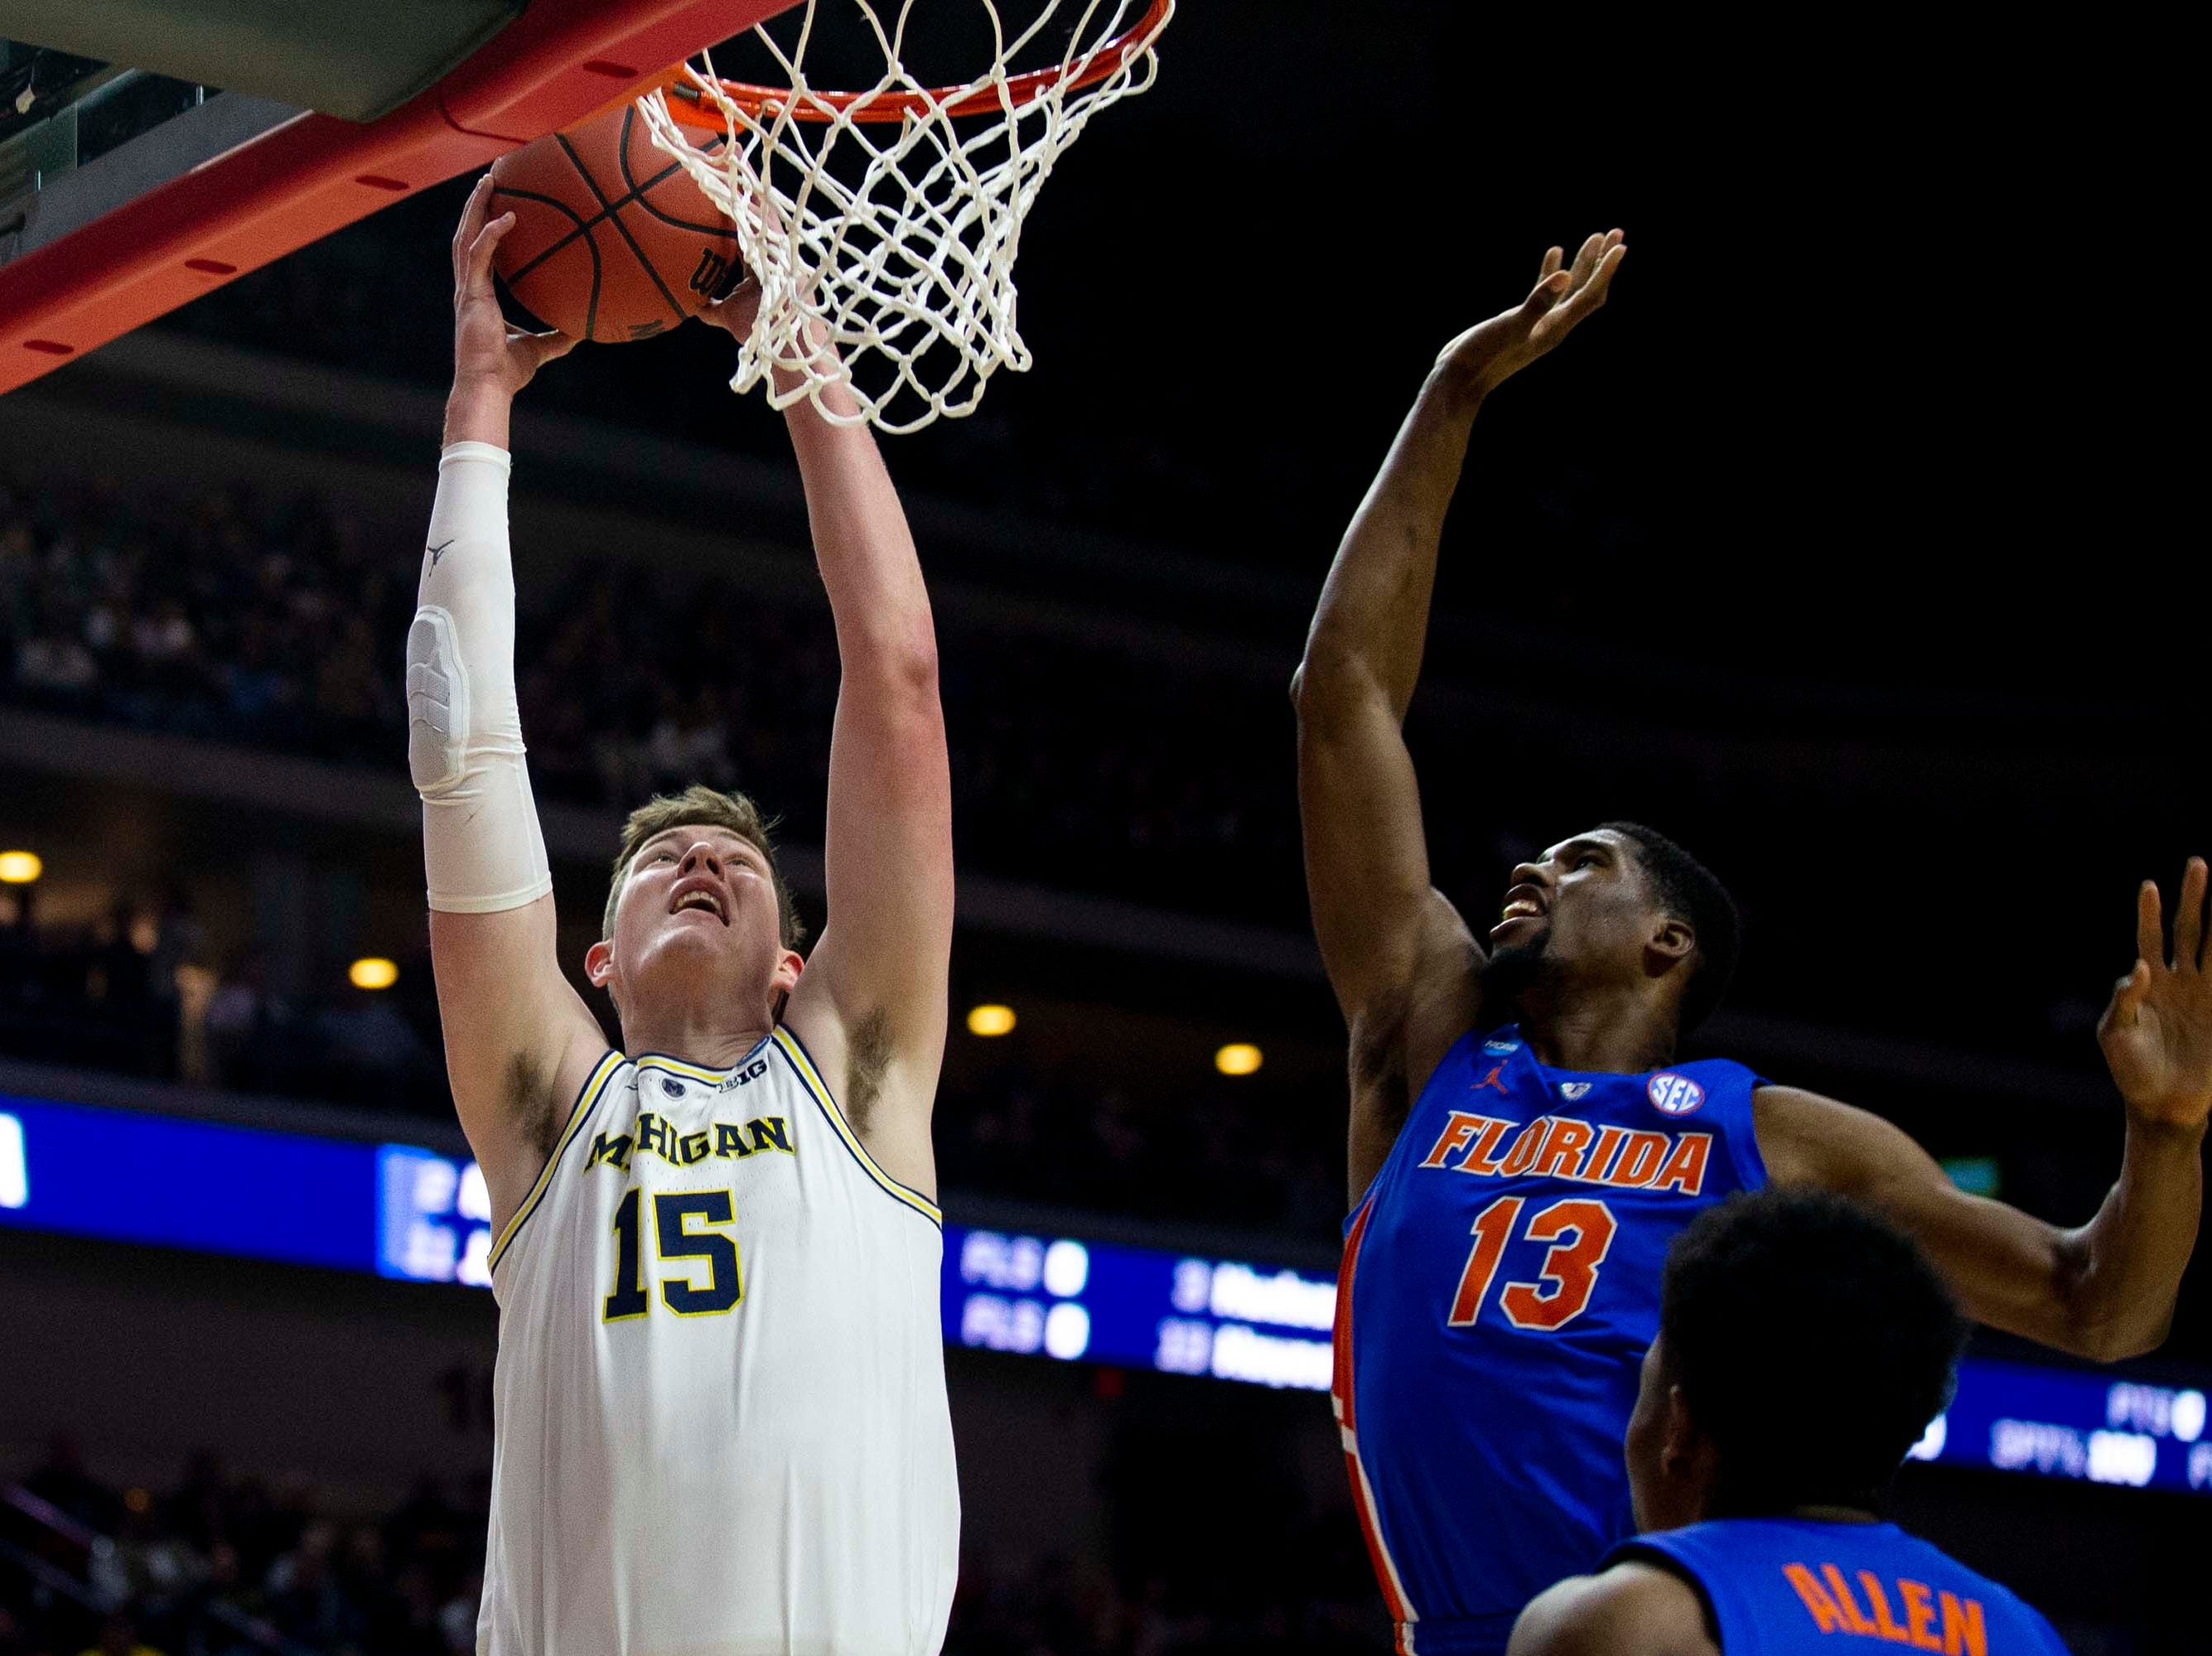 Michigan's Jon Teske dunks during the NCAA Tournament second-round match-up between Michigan and Florida on Saturday, March 23, 2019, in Wells Fargo Arena in Des Moines, Iowa.